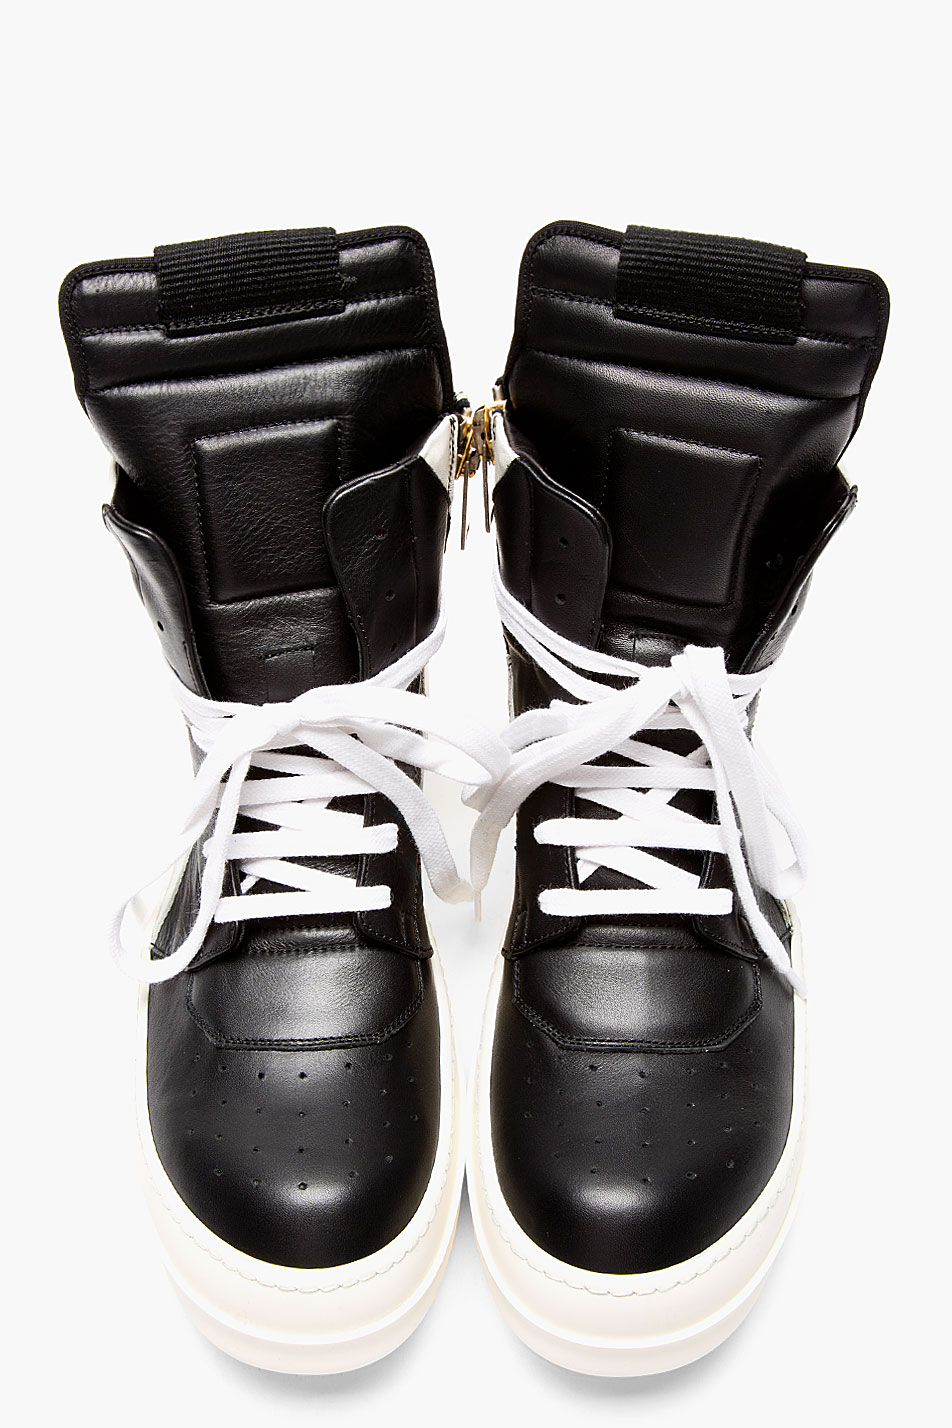 High End Fashion Sneakers rick owens 1